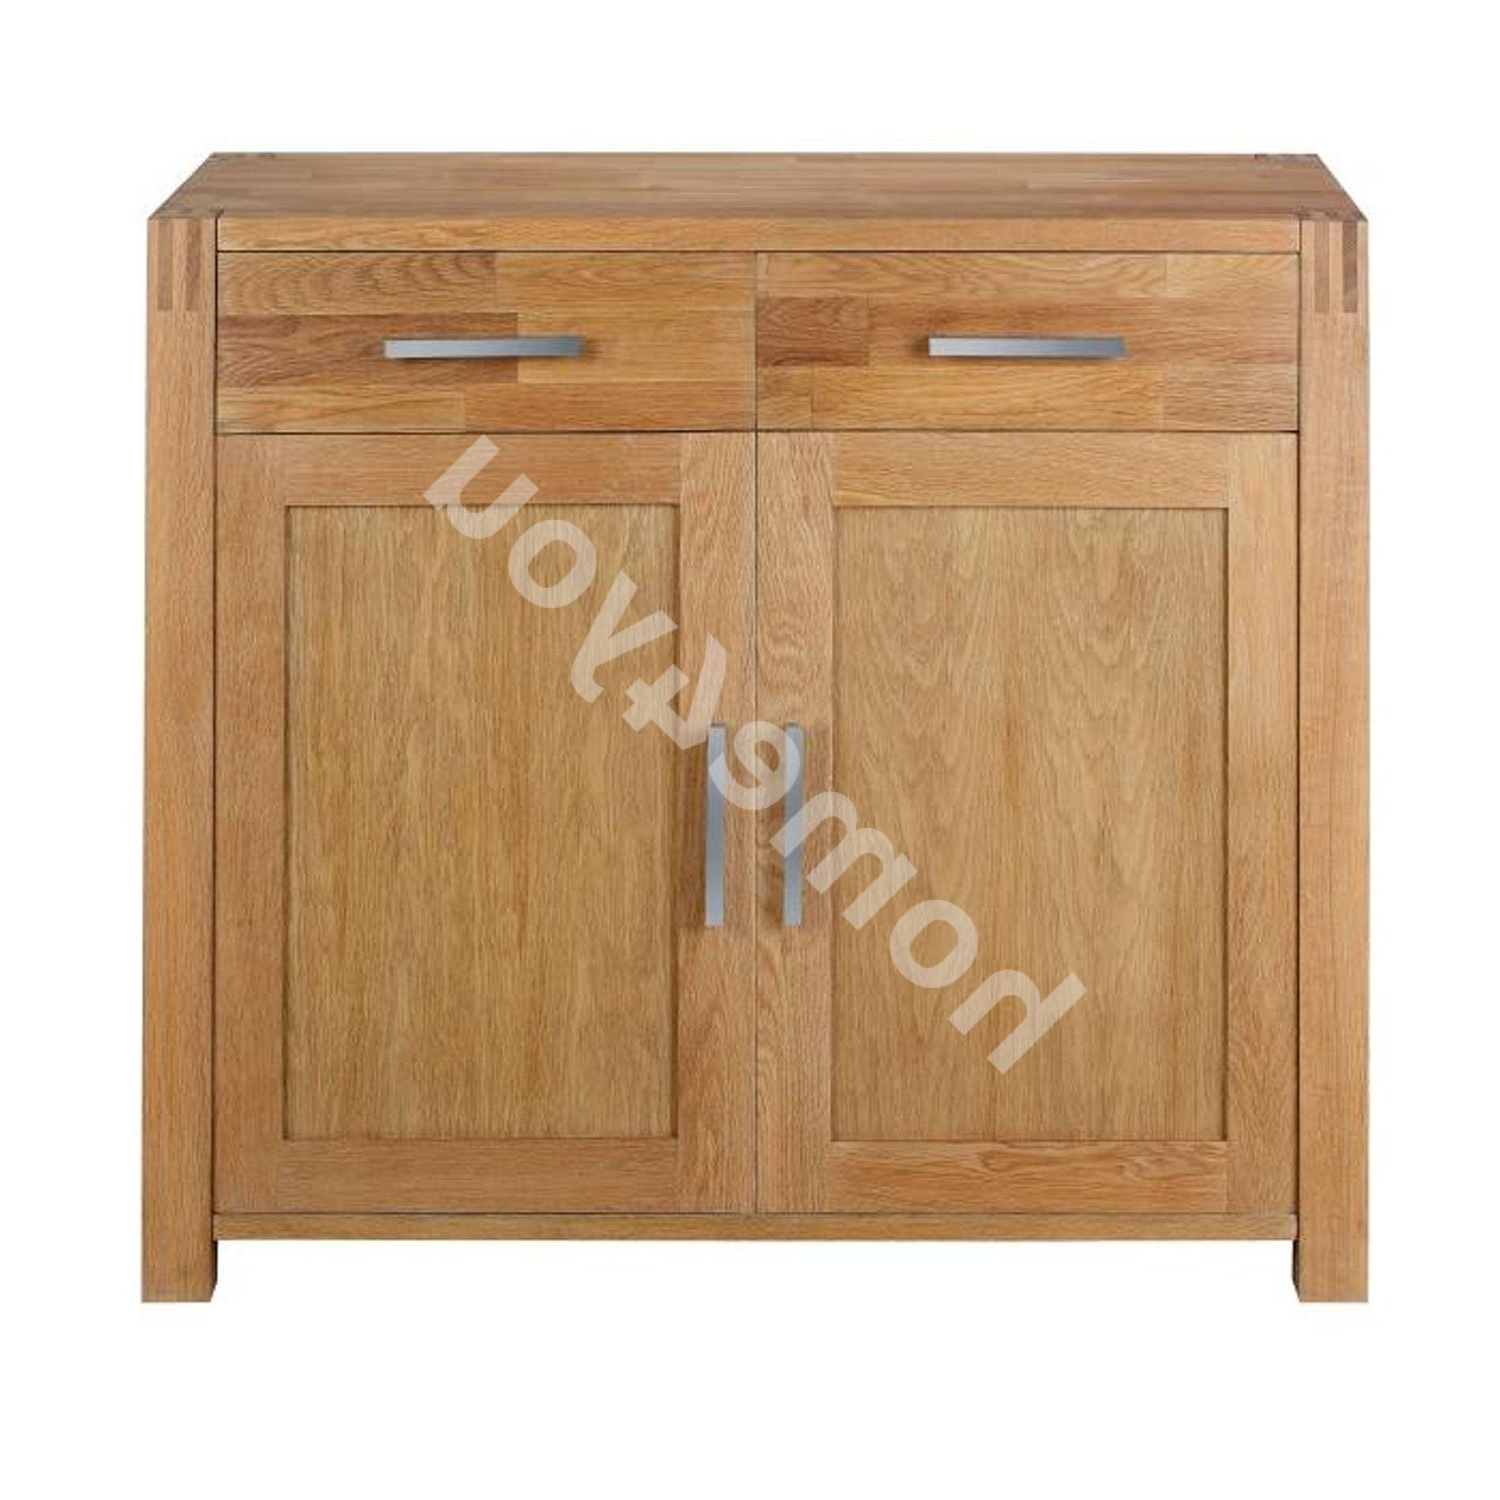 2018 Sideboard Chicago With 2 Doors And 2 Drawers, 97X44Xh86Cm, Wood: Oak,  Color: Natural, Finish: Oiled Inside Natural Oak Wood 2 Door Sideboards (View 2 of 20)